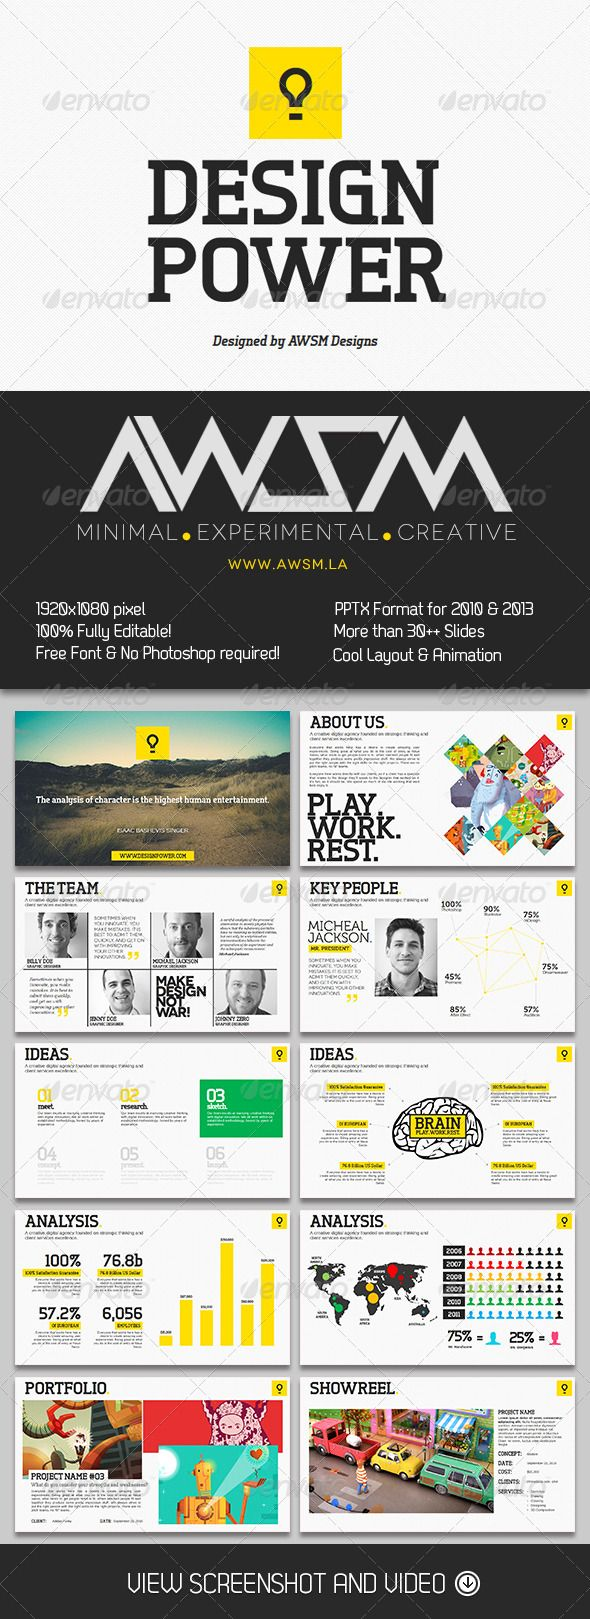 Design Power PowerPoint Template - Creative Powerpoint Templates